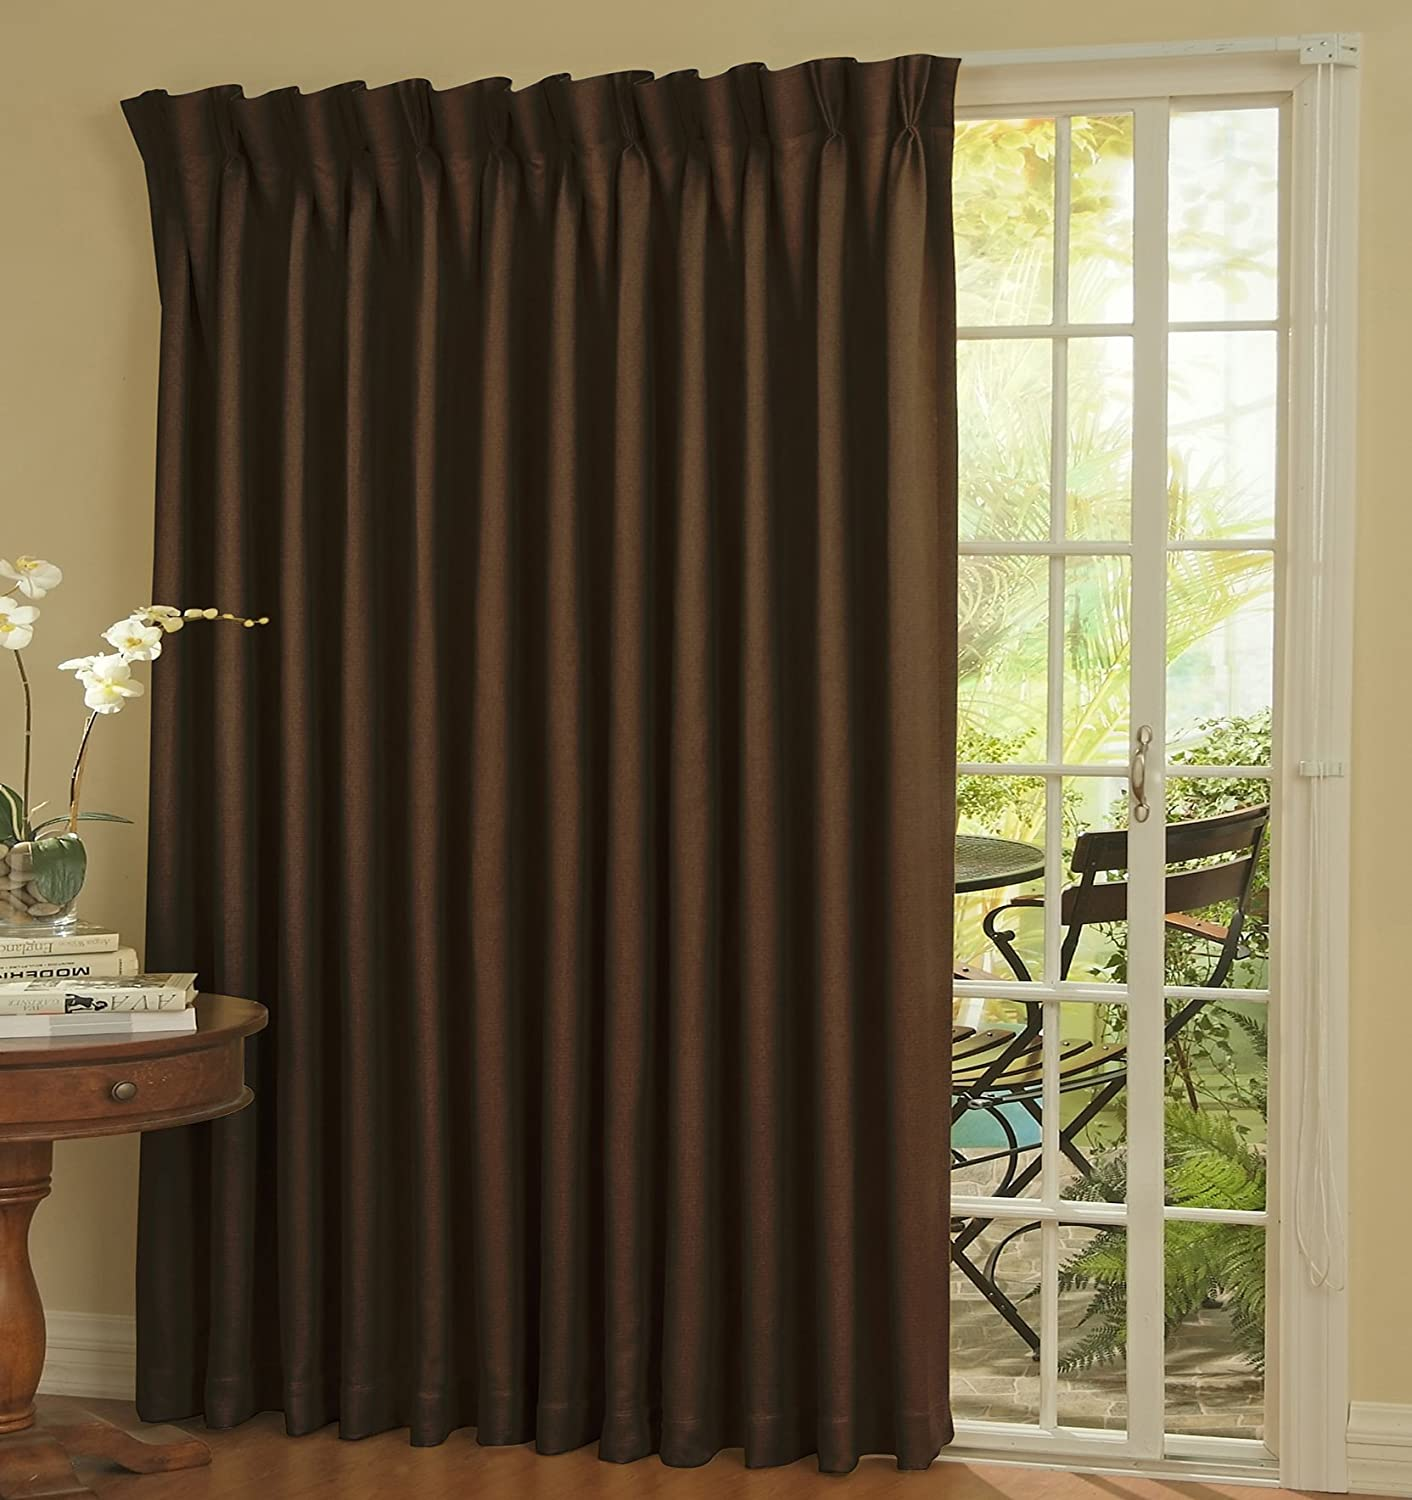 Amazon.com: Eclipse Curtains Thermal Blackout 100 X 84 Inch Polyester Patio Door  Curtain Panel, Espresso: Home U0026 Kitchen  Curtains For Sliding Glass Doors